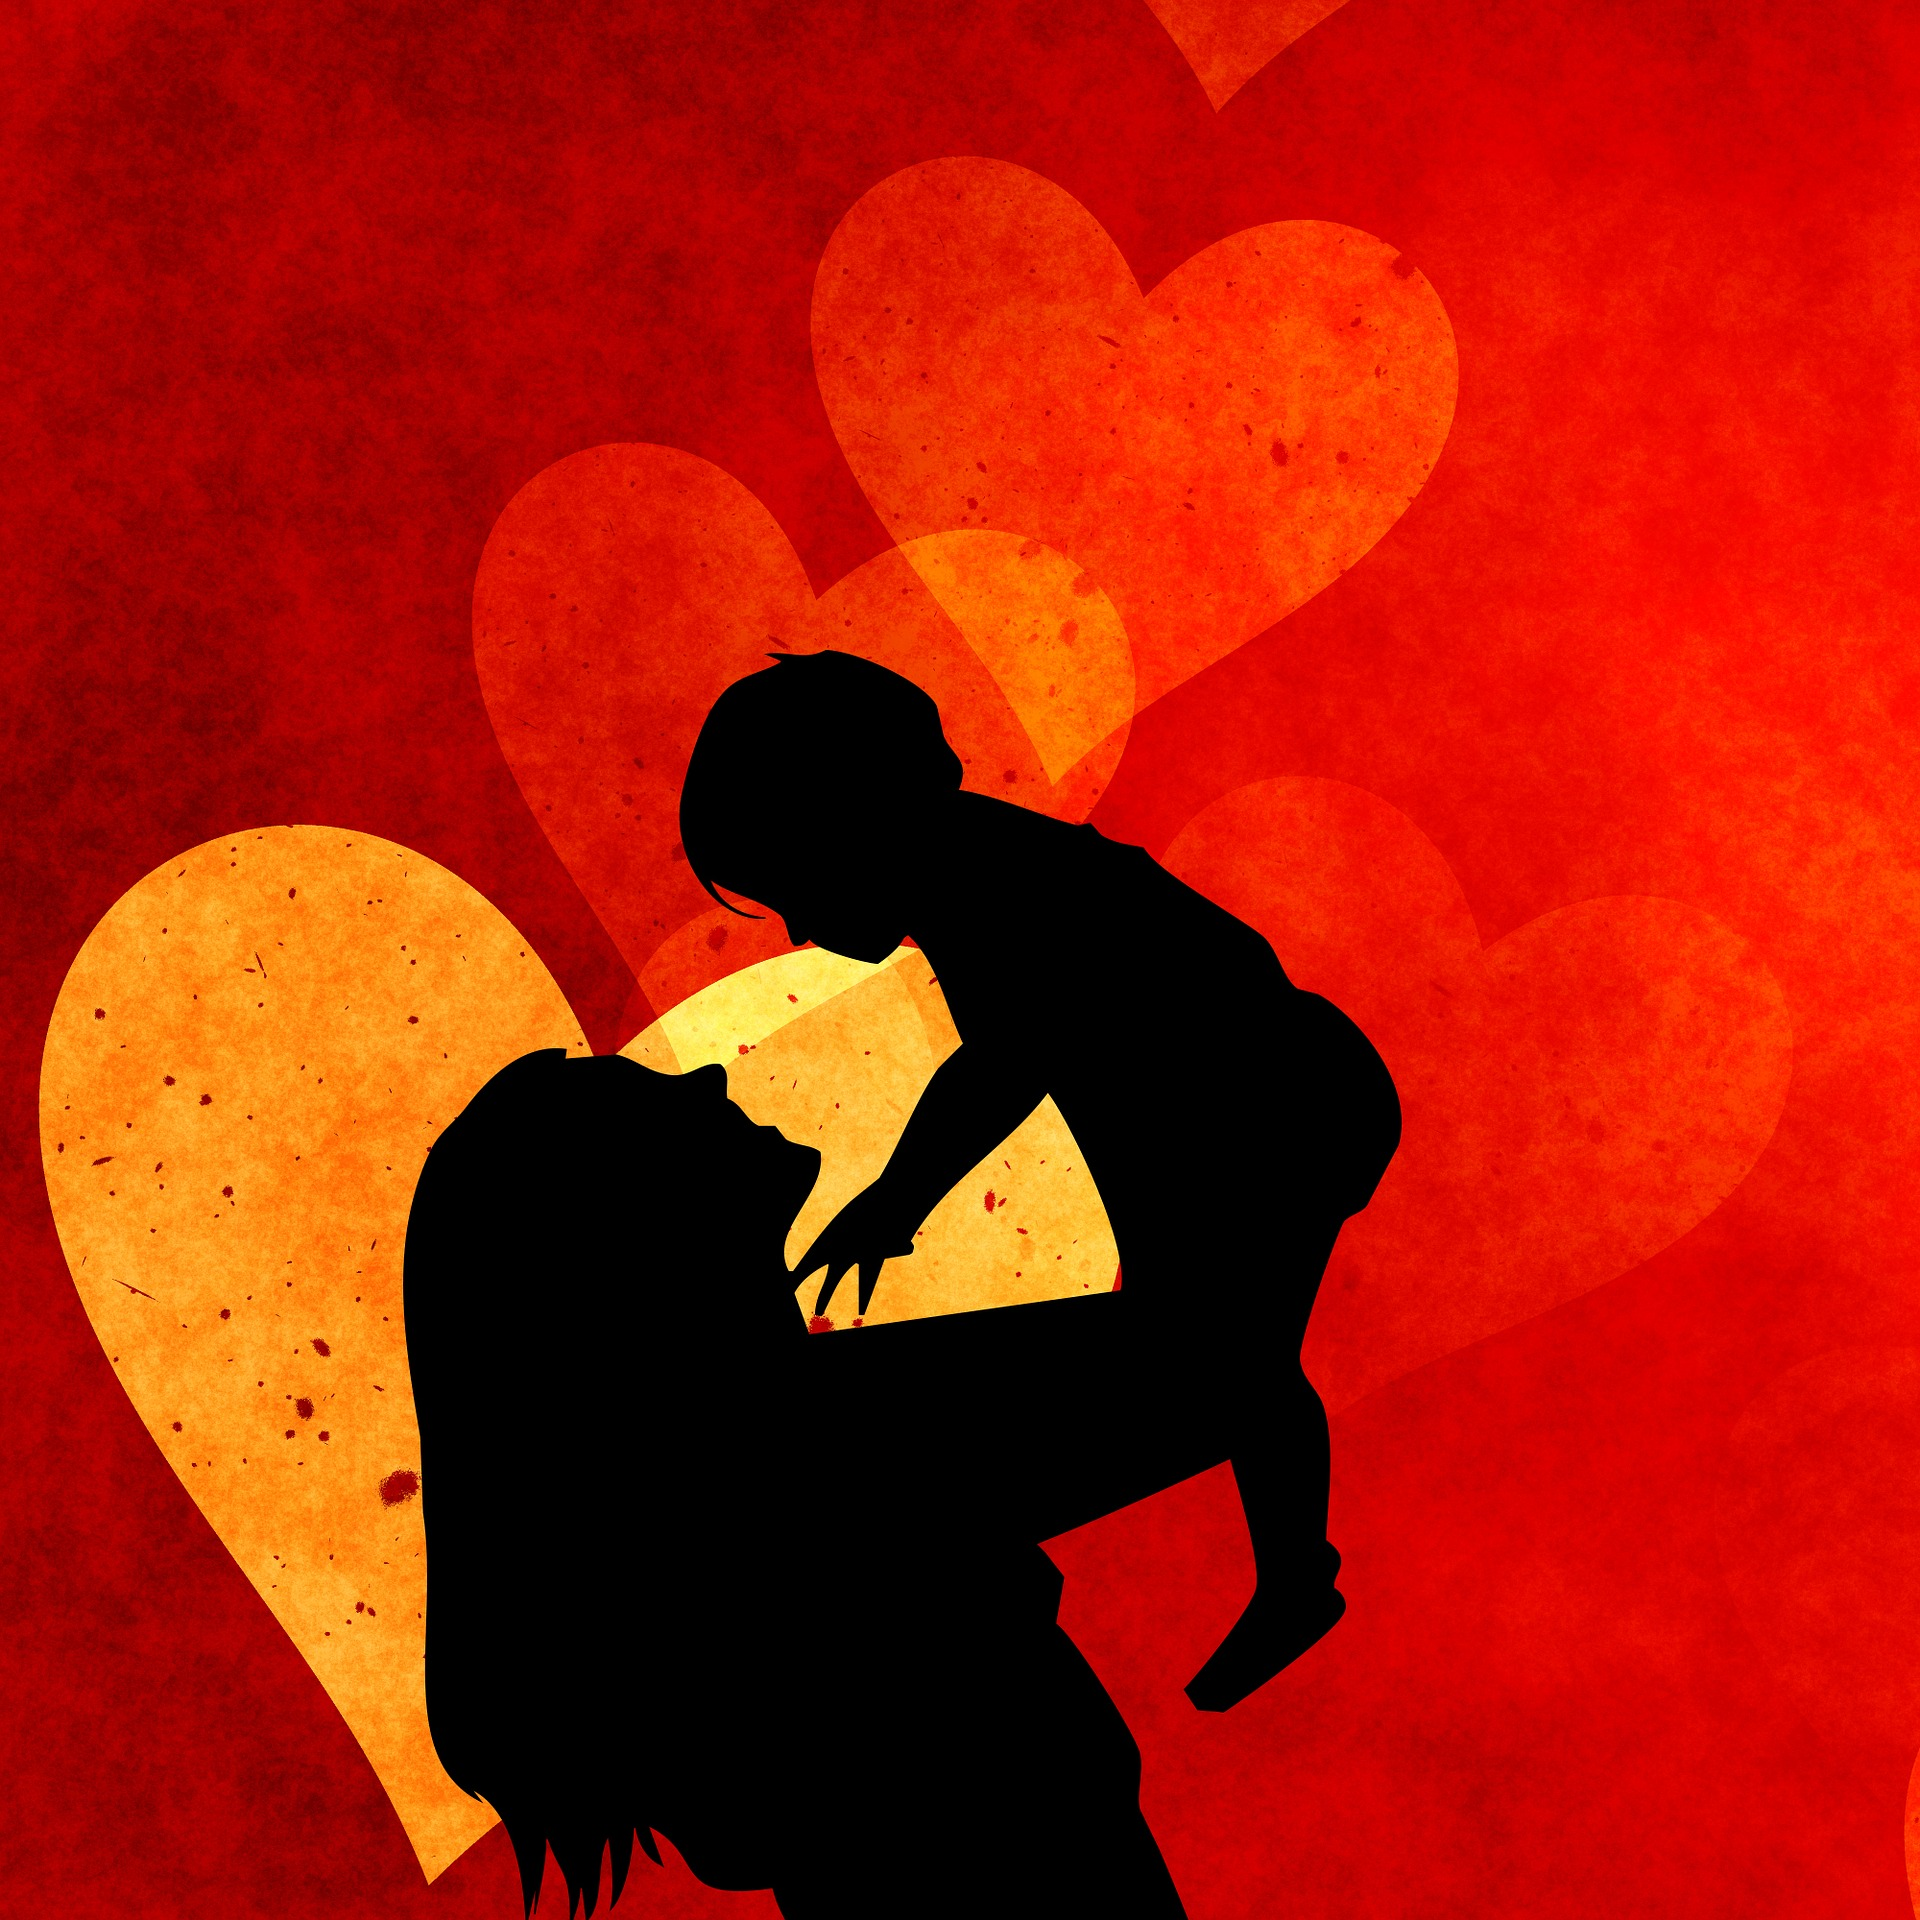 mother-and-baby-1646450_1920.jpg